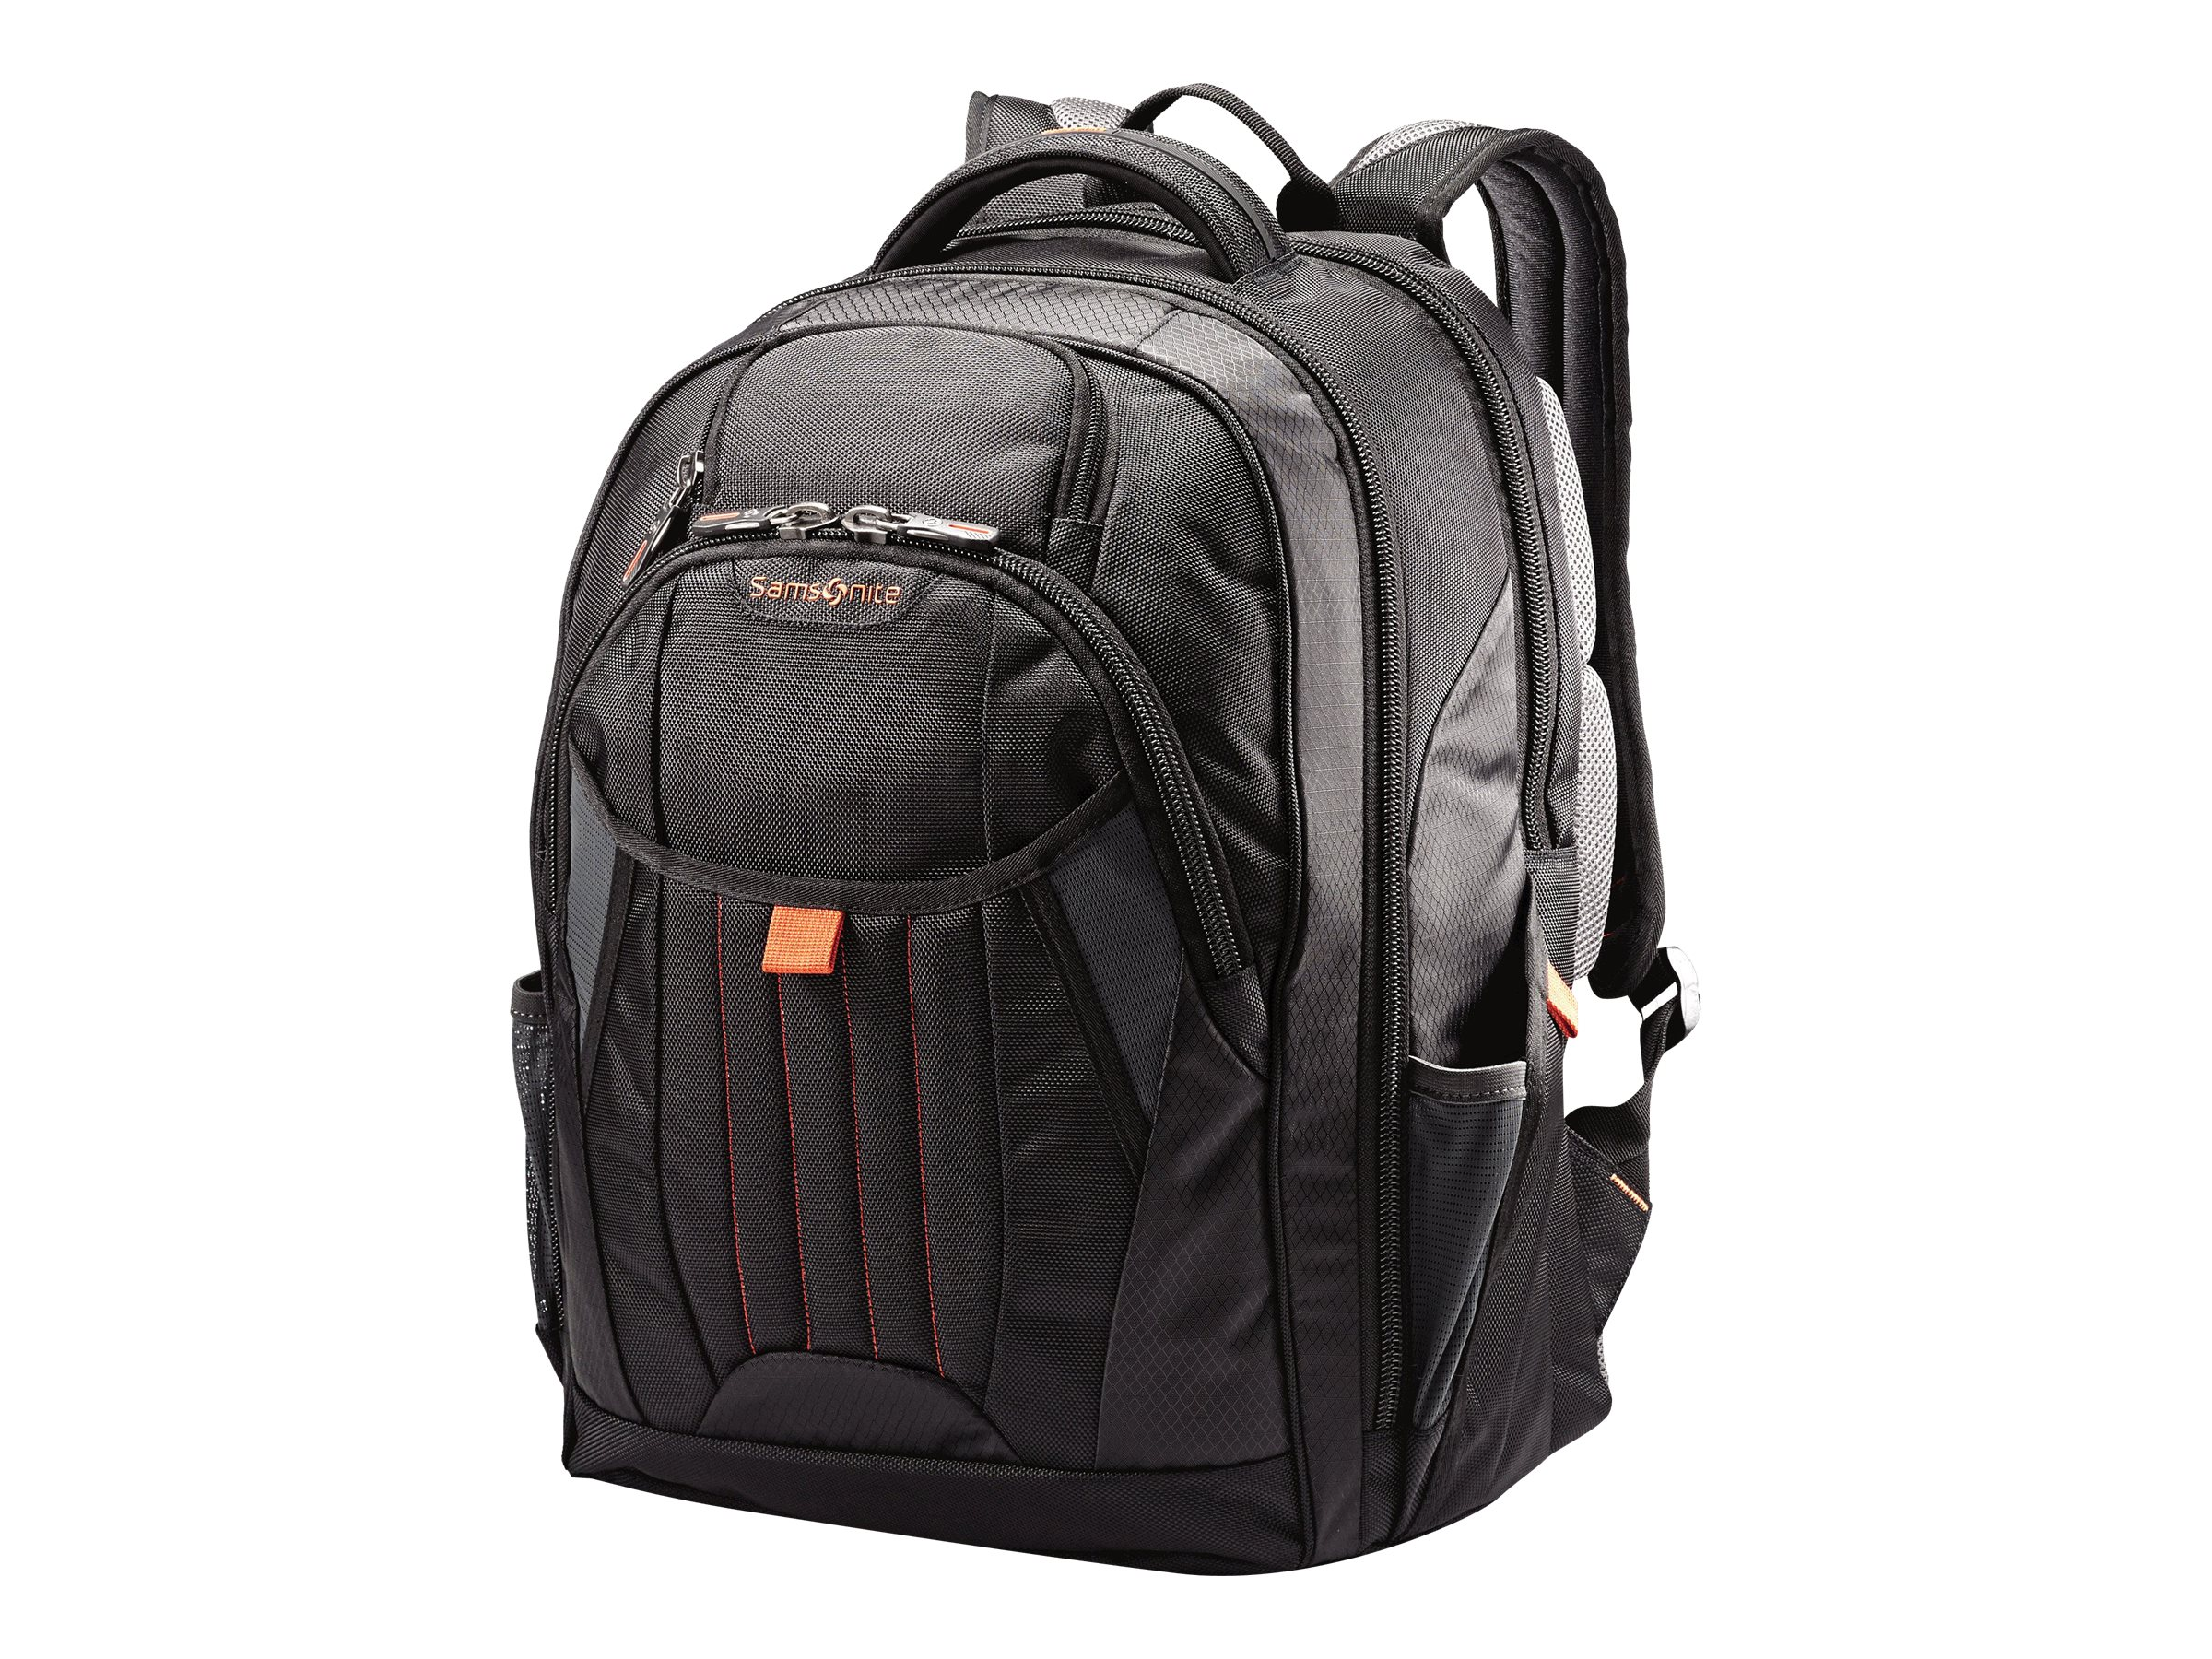 Stephen Gould Tectonic 2 Large Backpack 17, Black Orange